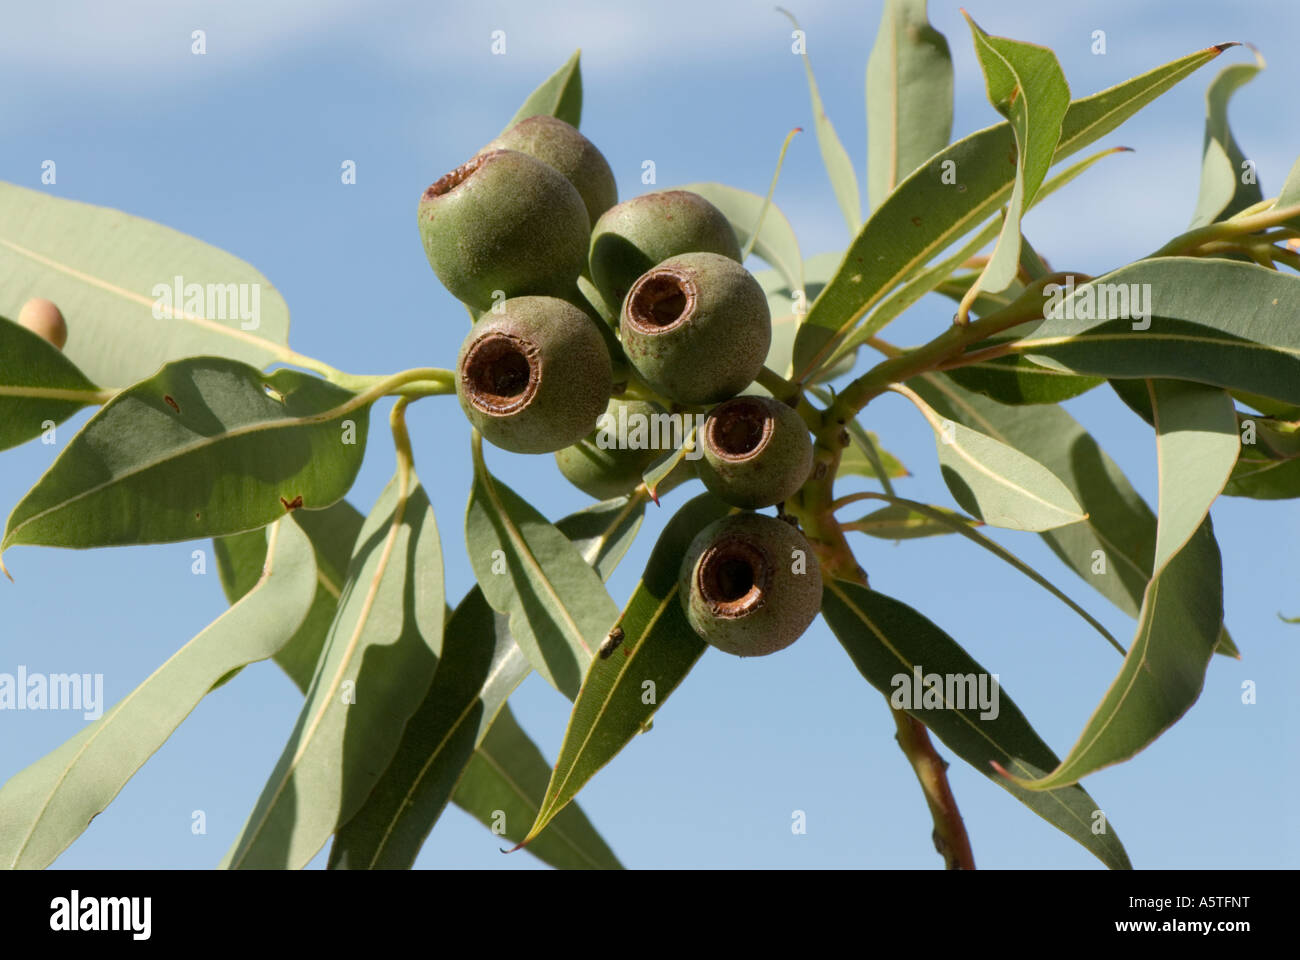 The fruit pods or Gum Nuts of the Red Flowering Gum Tree Eucalyptus Ficifolia Stock Photo